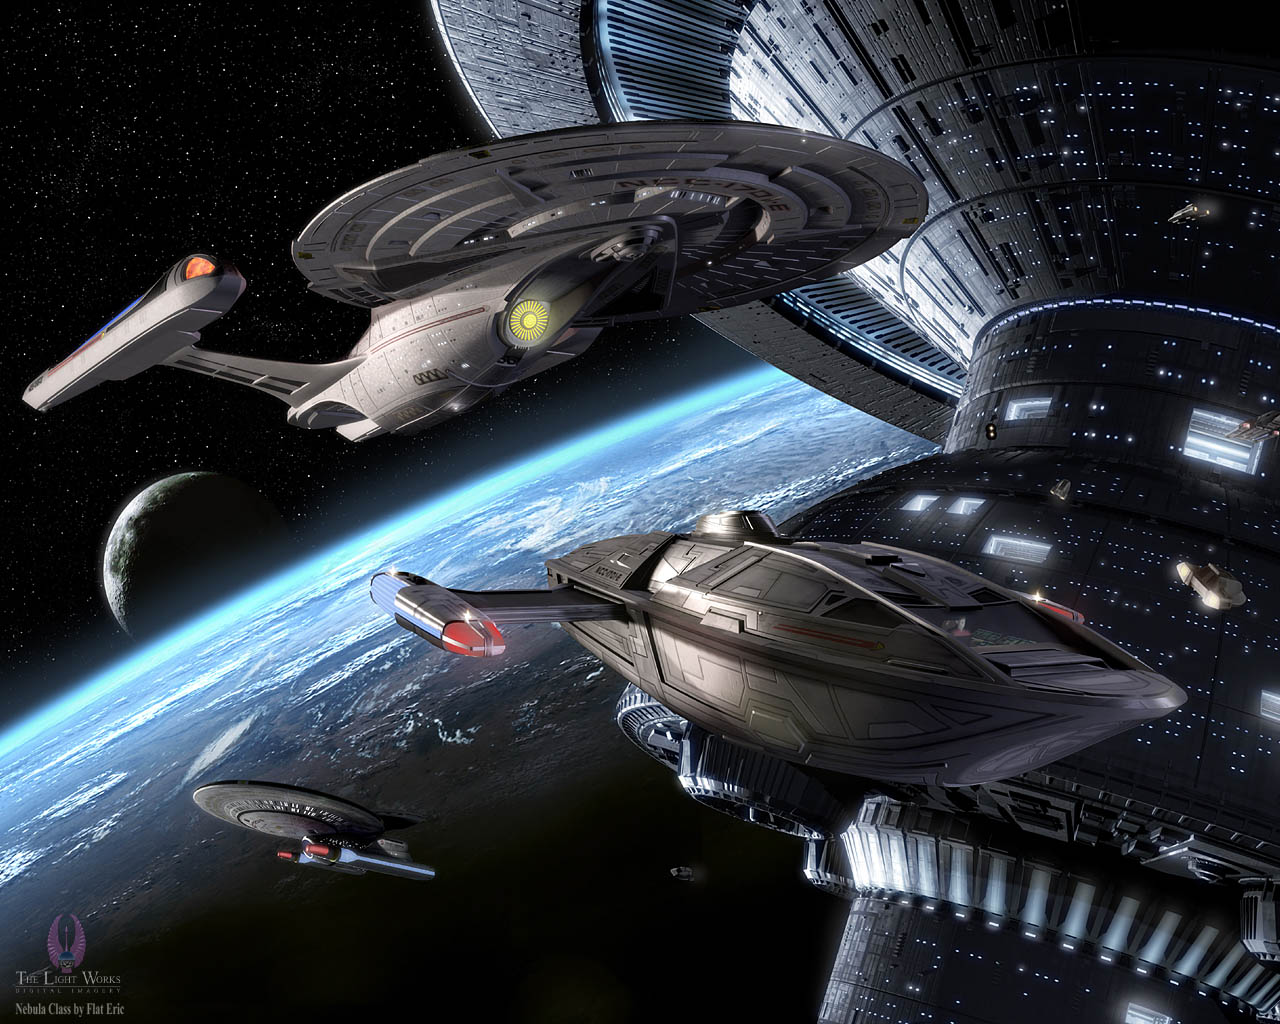 Federation Starship Wallpaper Federation |on 30 Avril